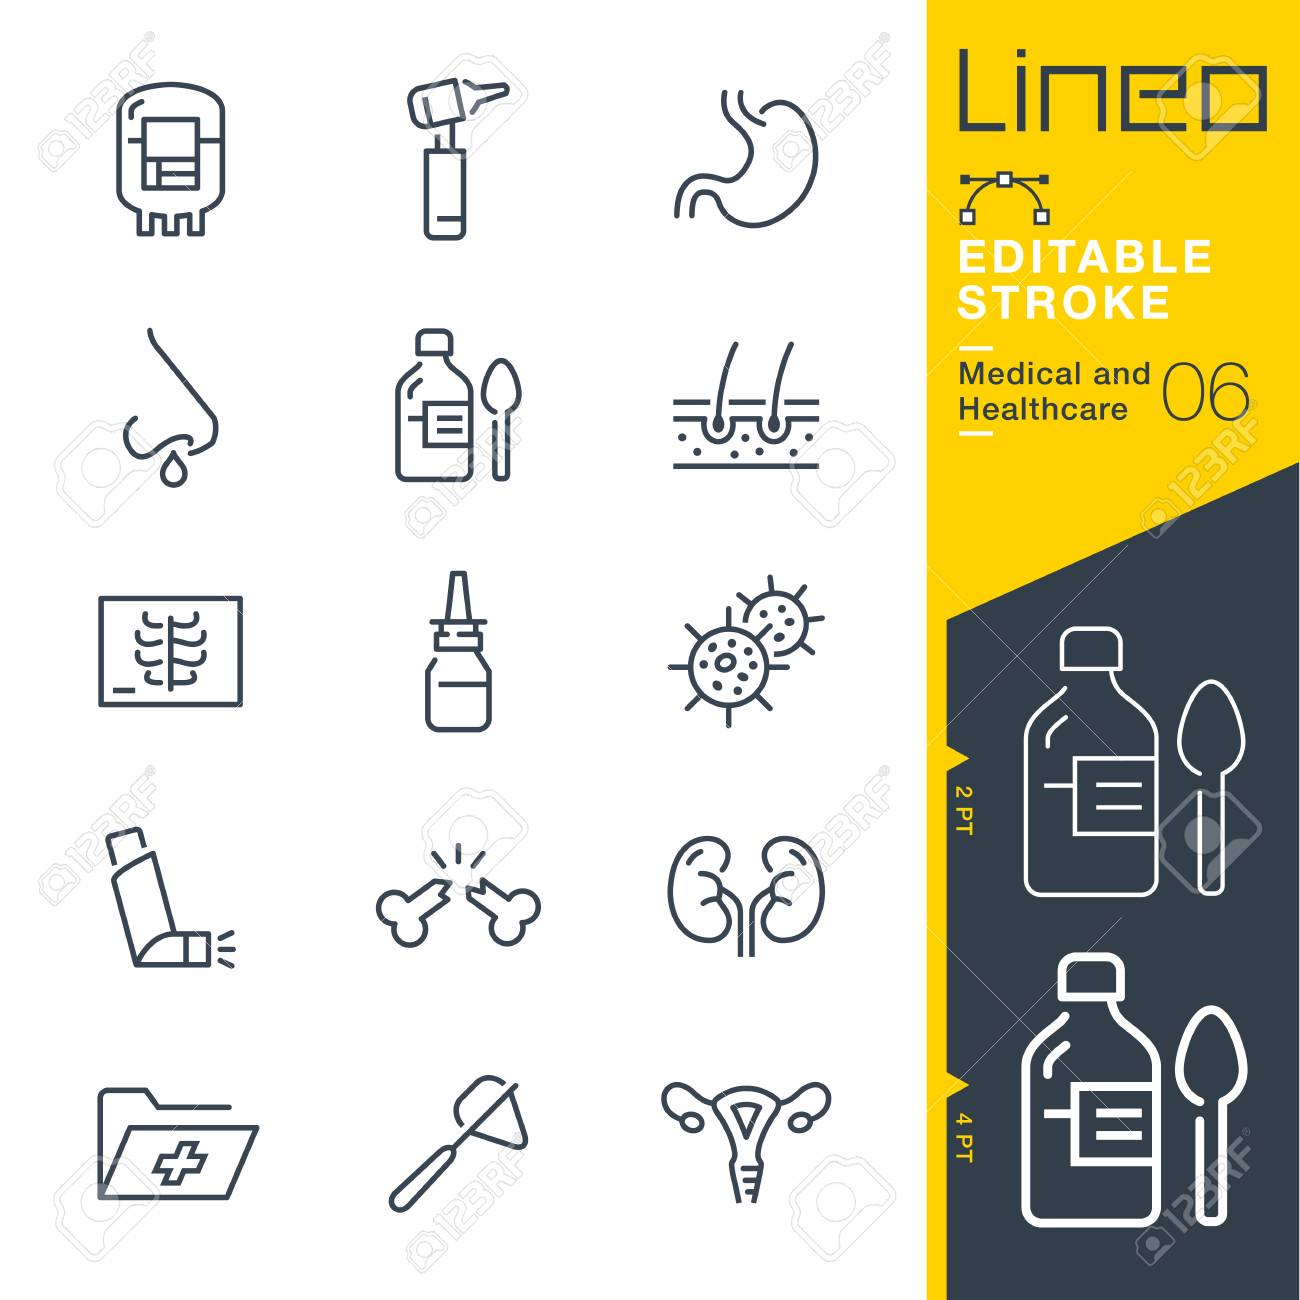 Lineo Editable Stroke - Medical and Healthcare Line Icons - 98544825